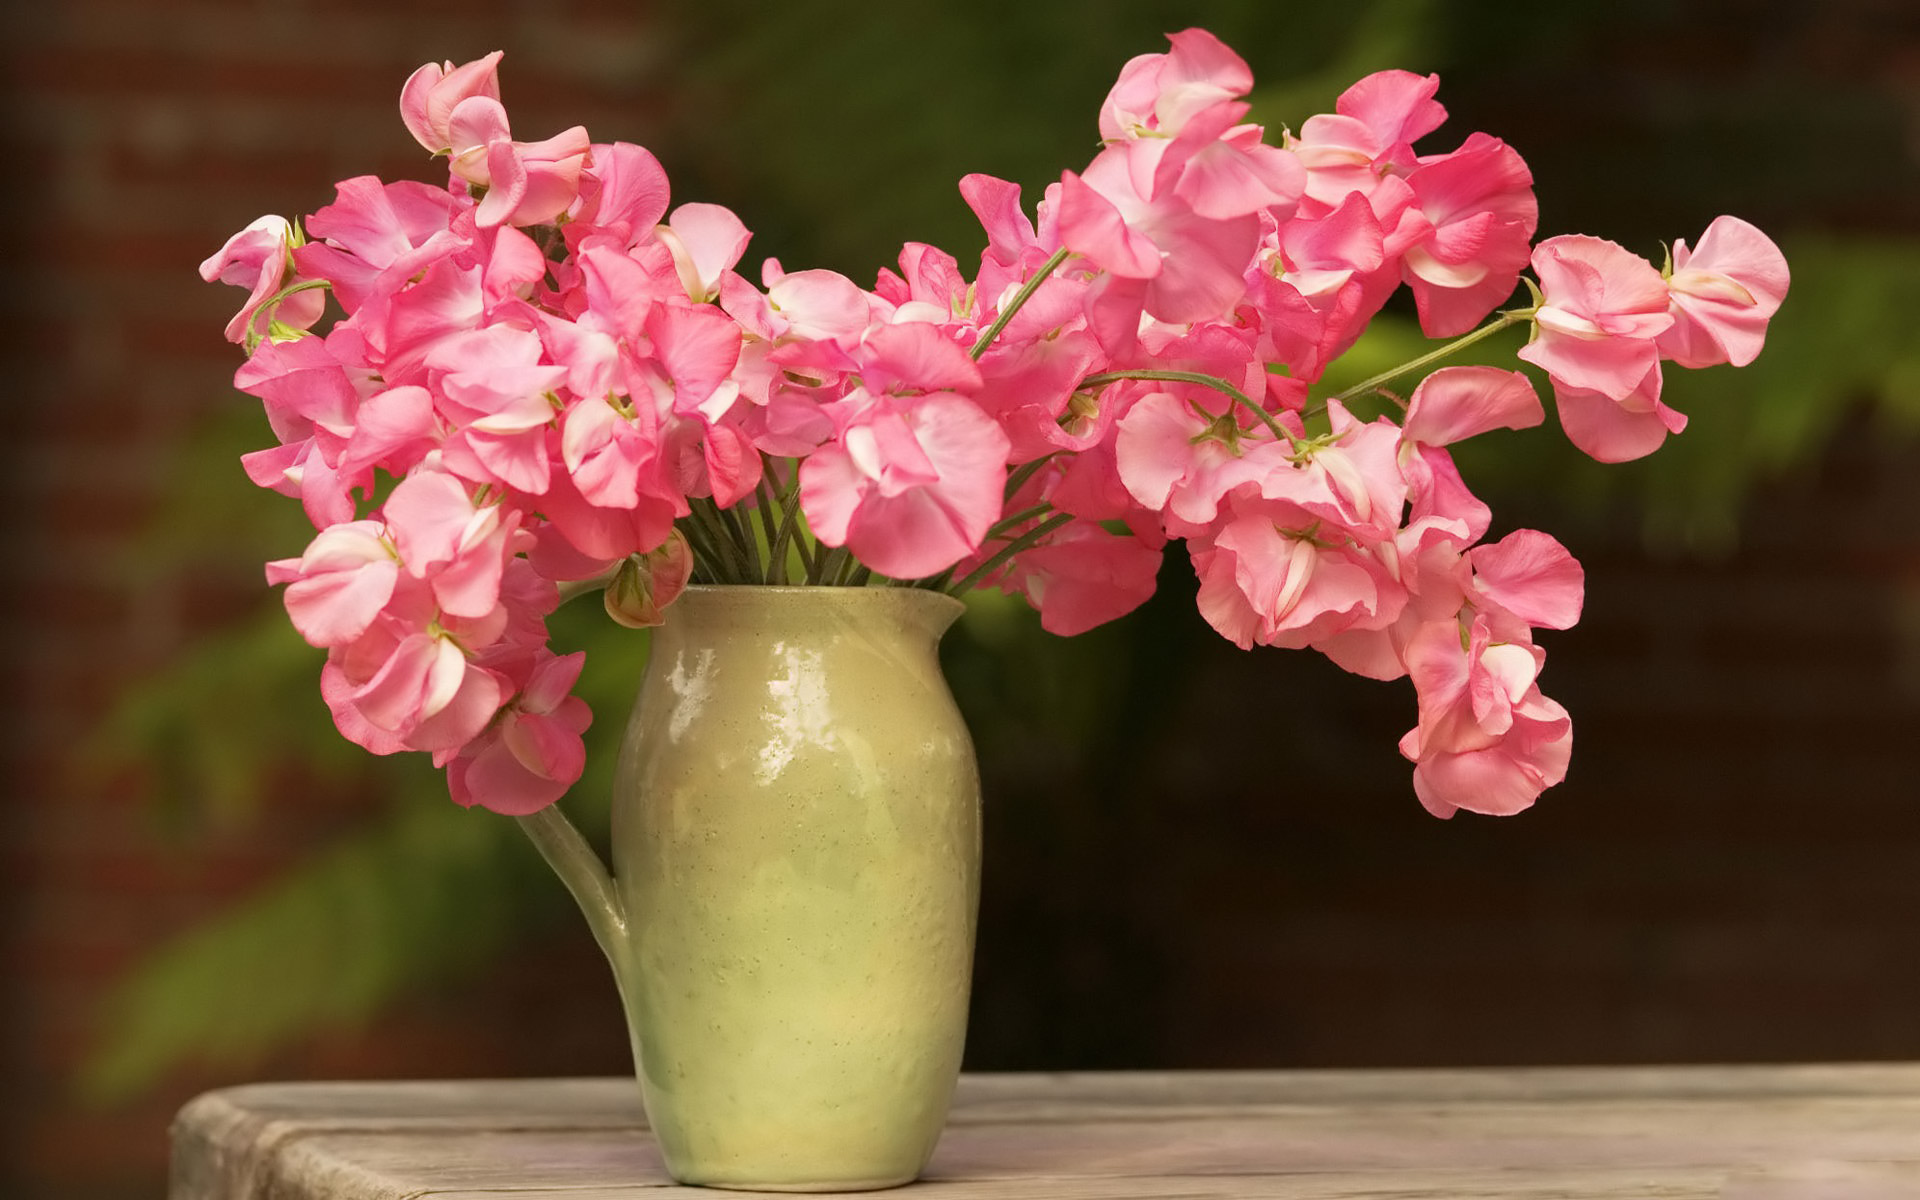 Bouquet Of Delicate Pink Flowers Background Image Hd Wallpaper Wallpaper